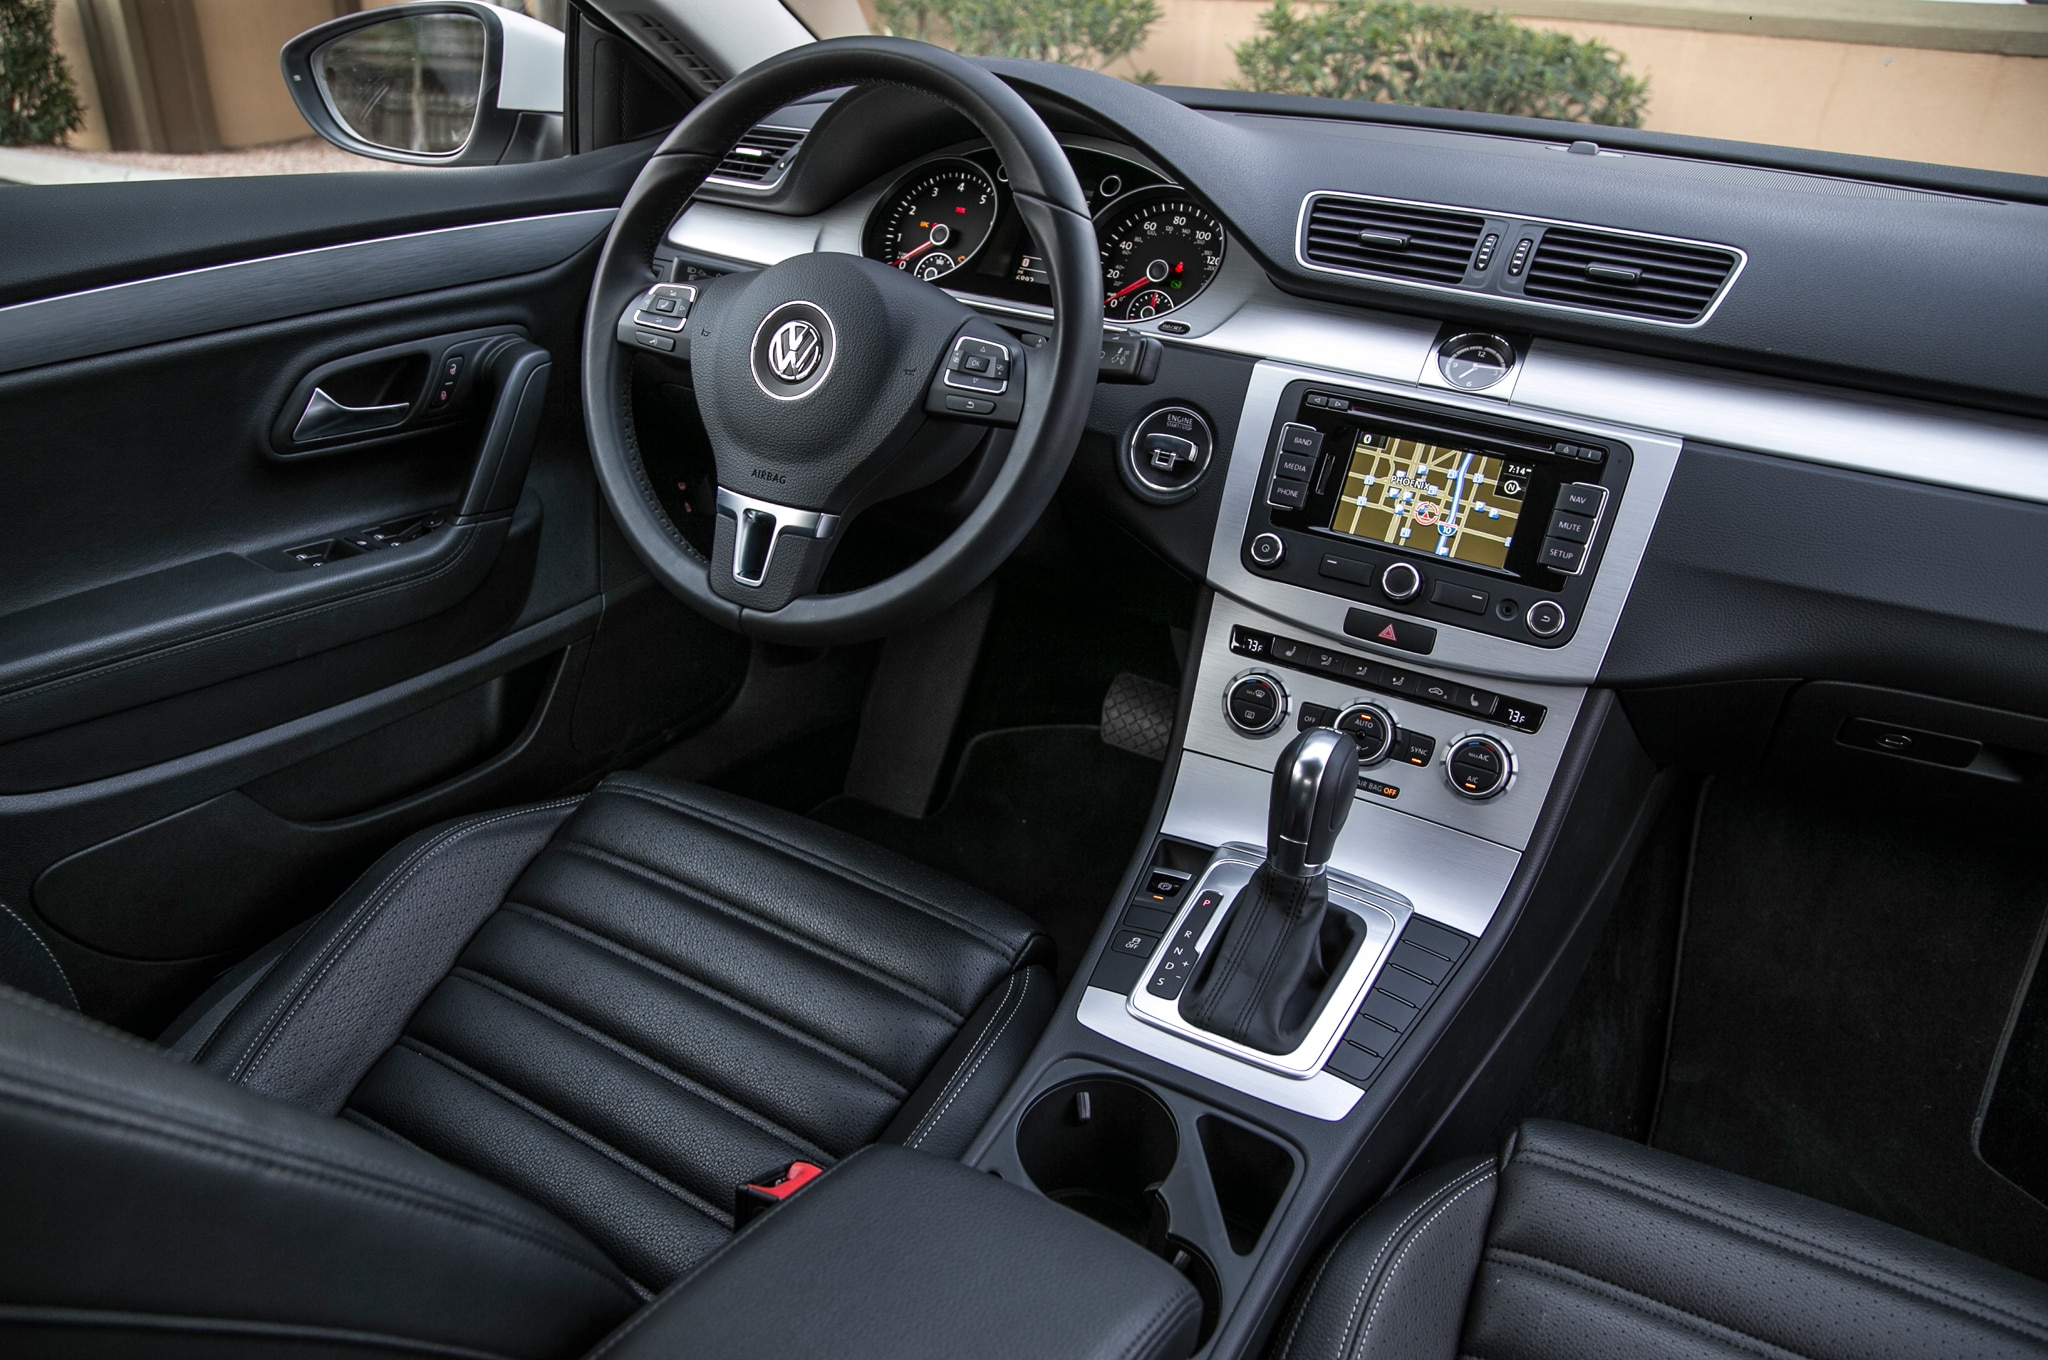 volkswagen cc 2014 primera prueba autos terra motor trend. Black Bedroom Furniture Sets. Home Design Ideas